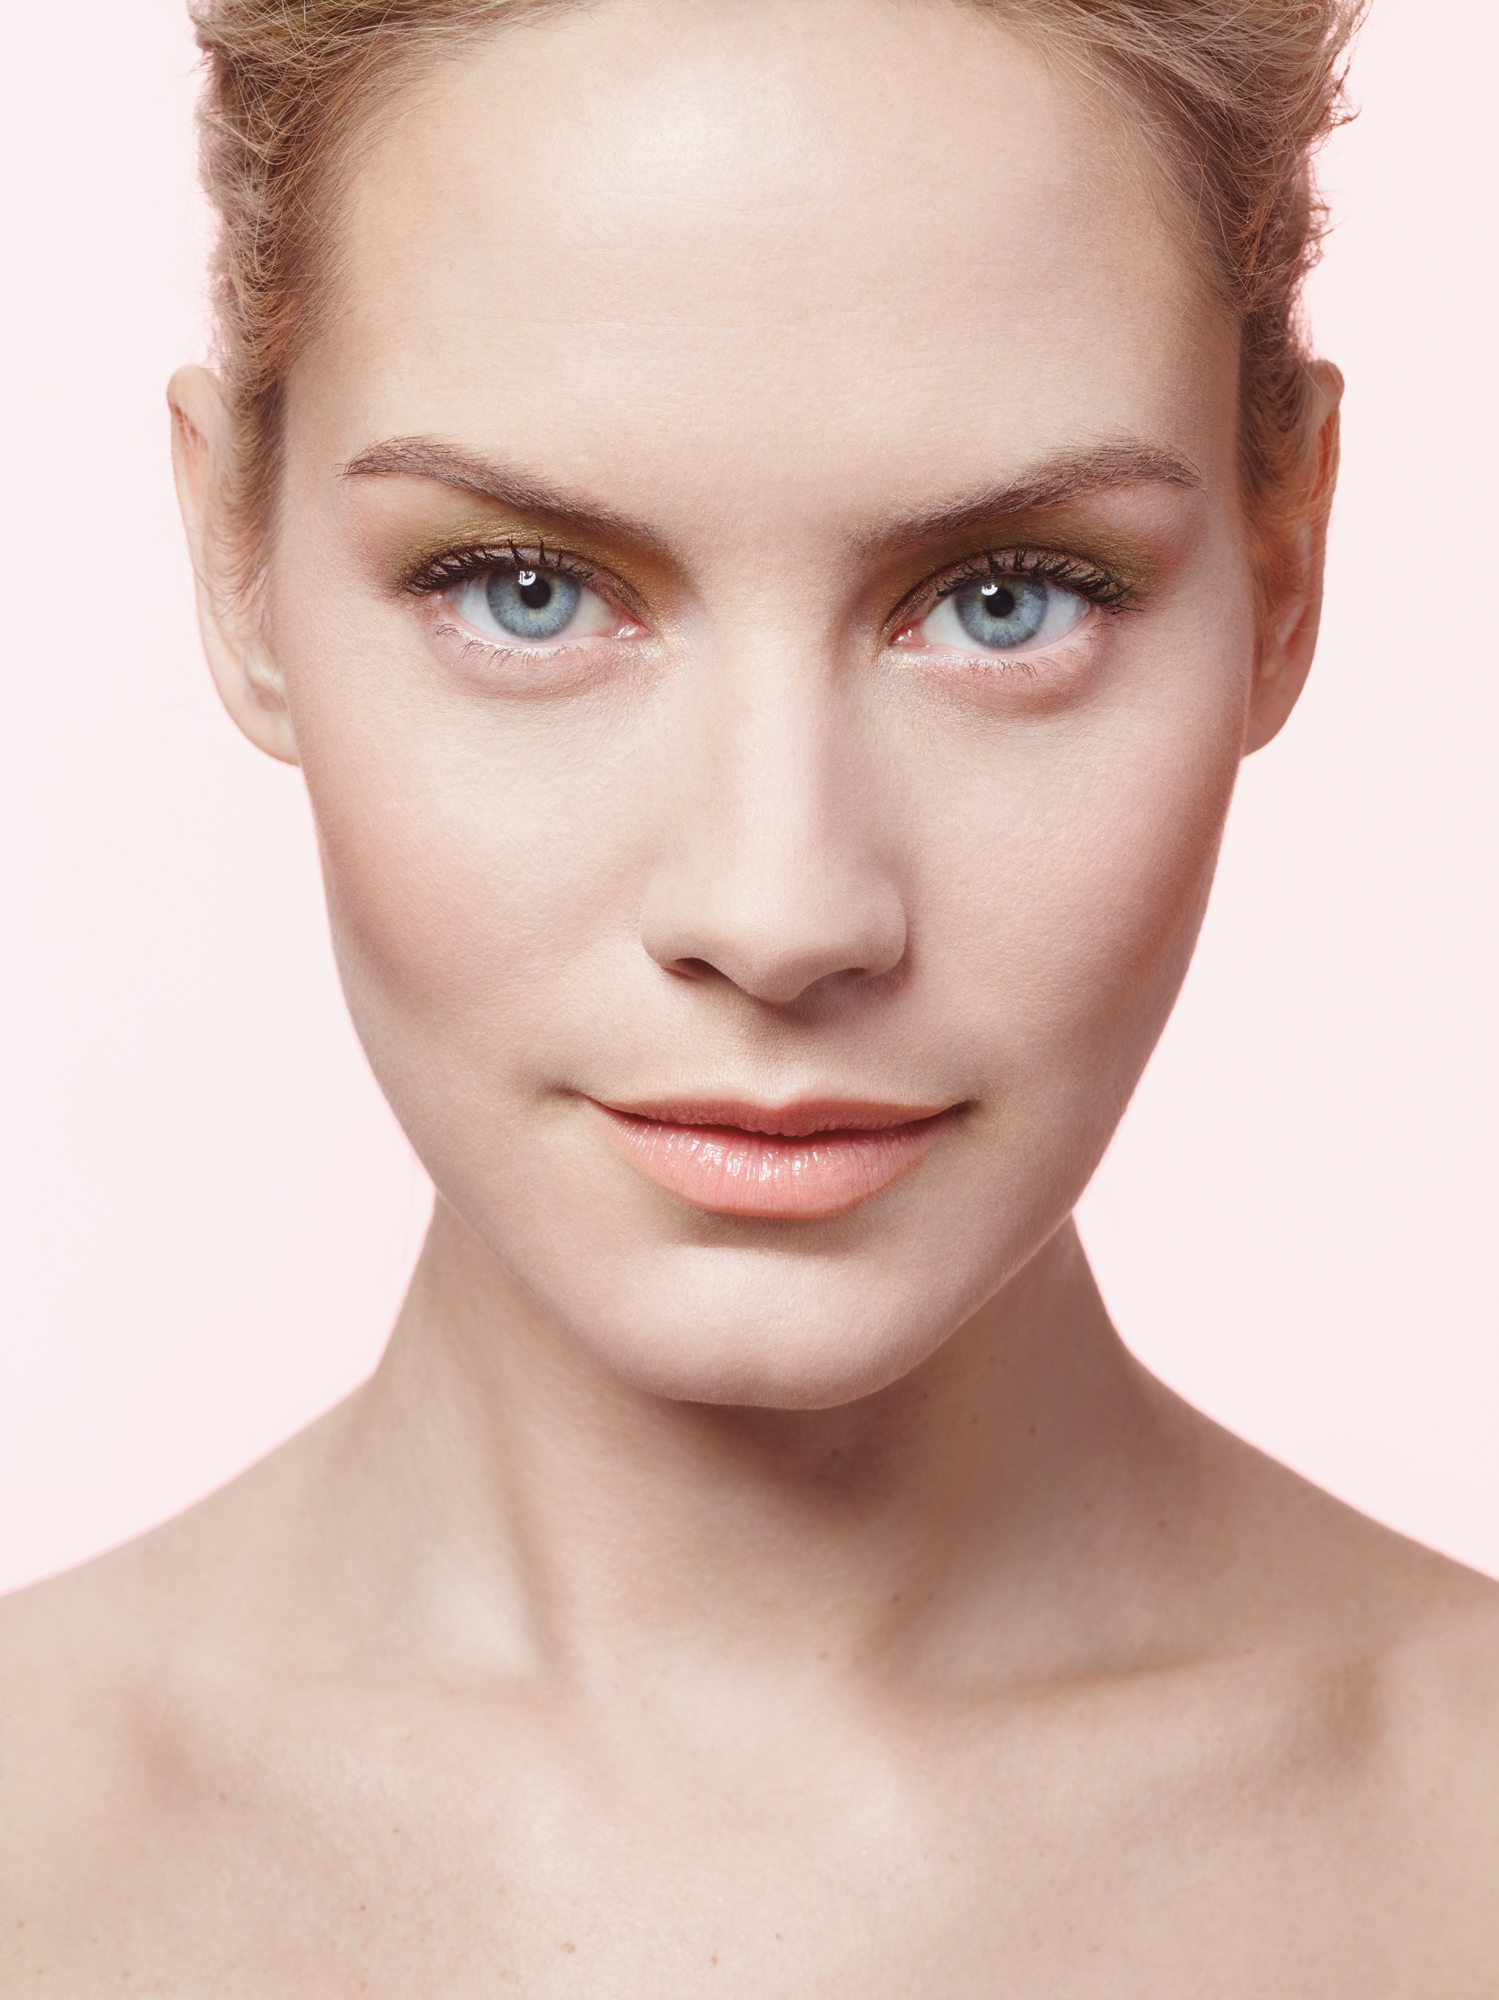 Model with natural pinkish makeup